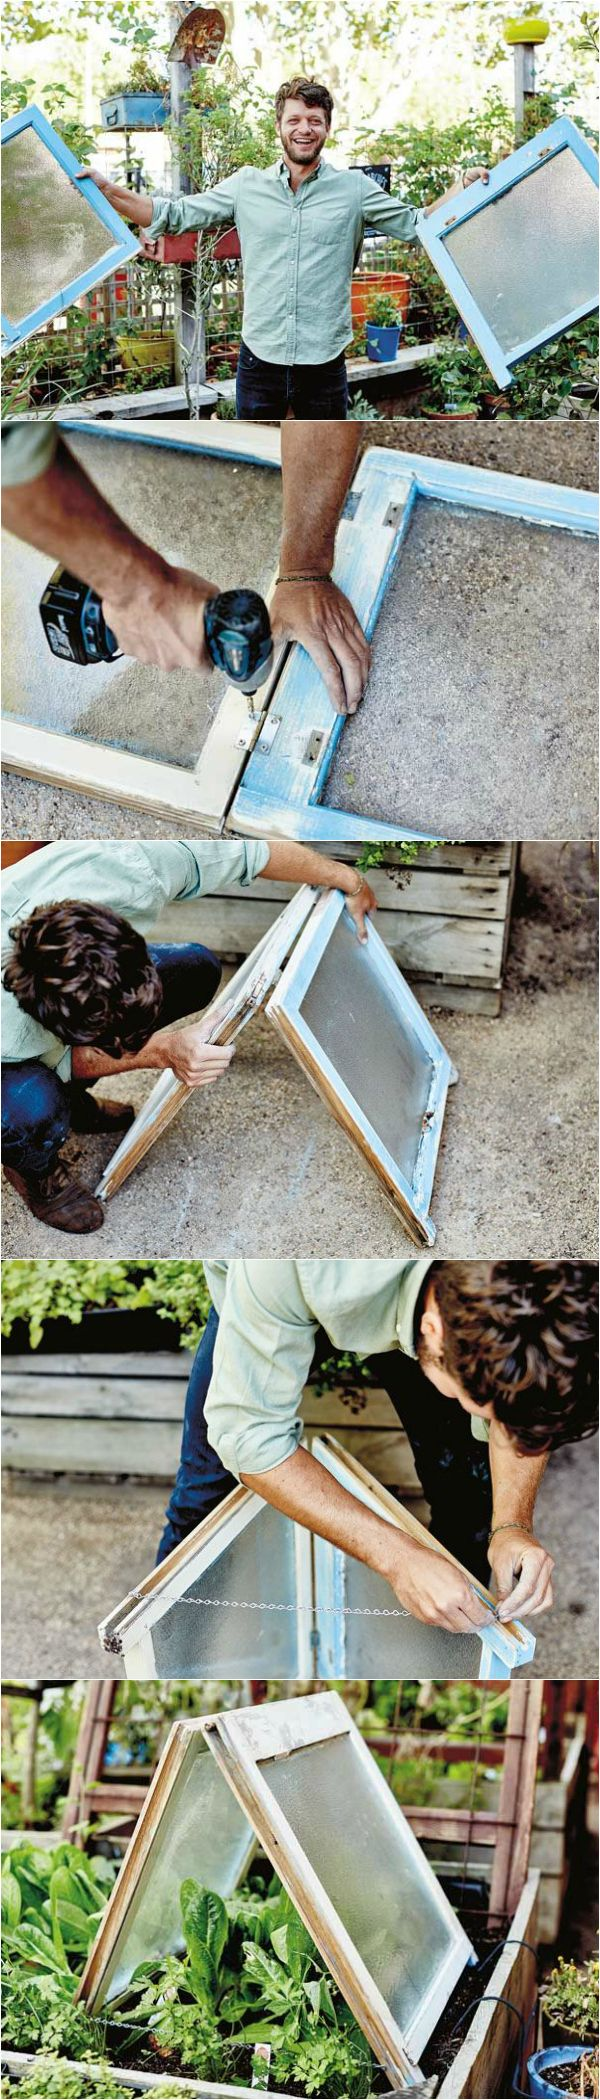 This upcycled DIY greenhouse project made from old windows is an excellent way to avoid frost damage or help seedlings along